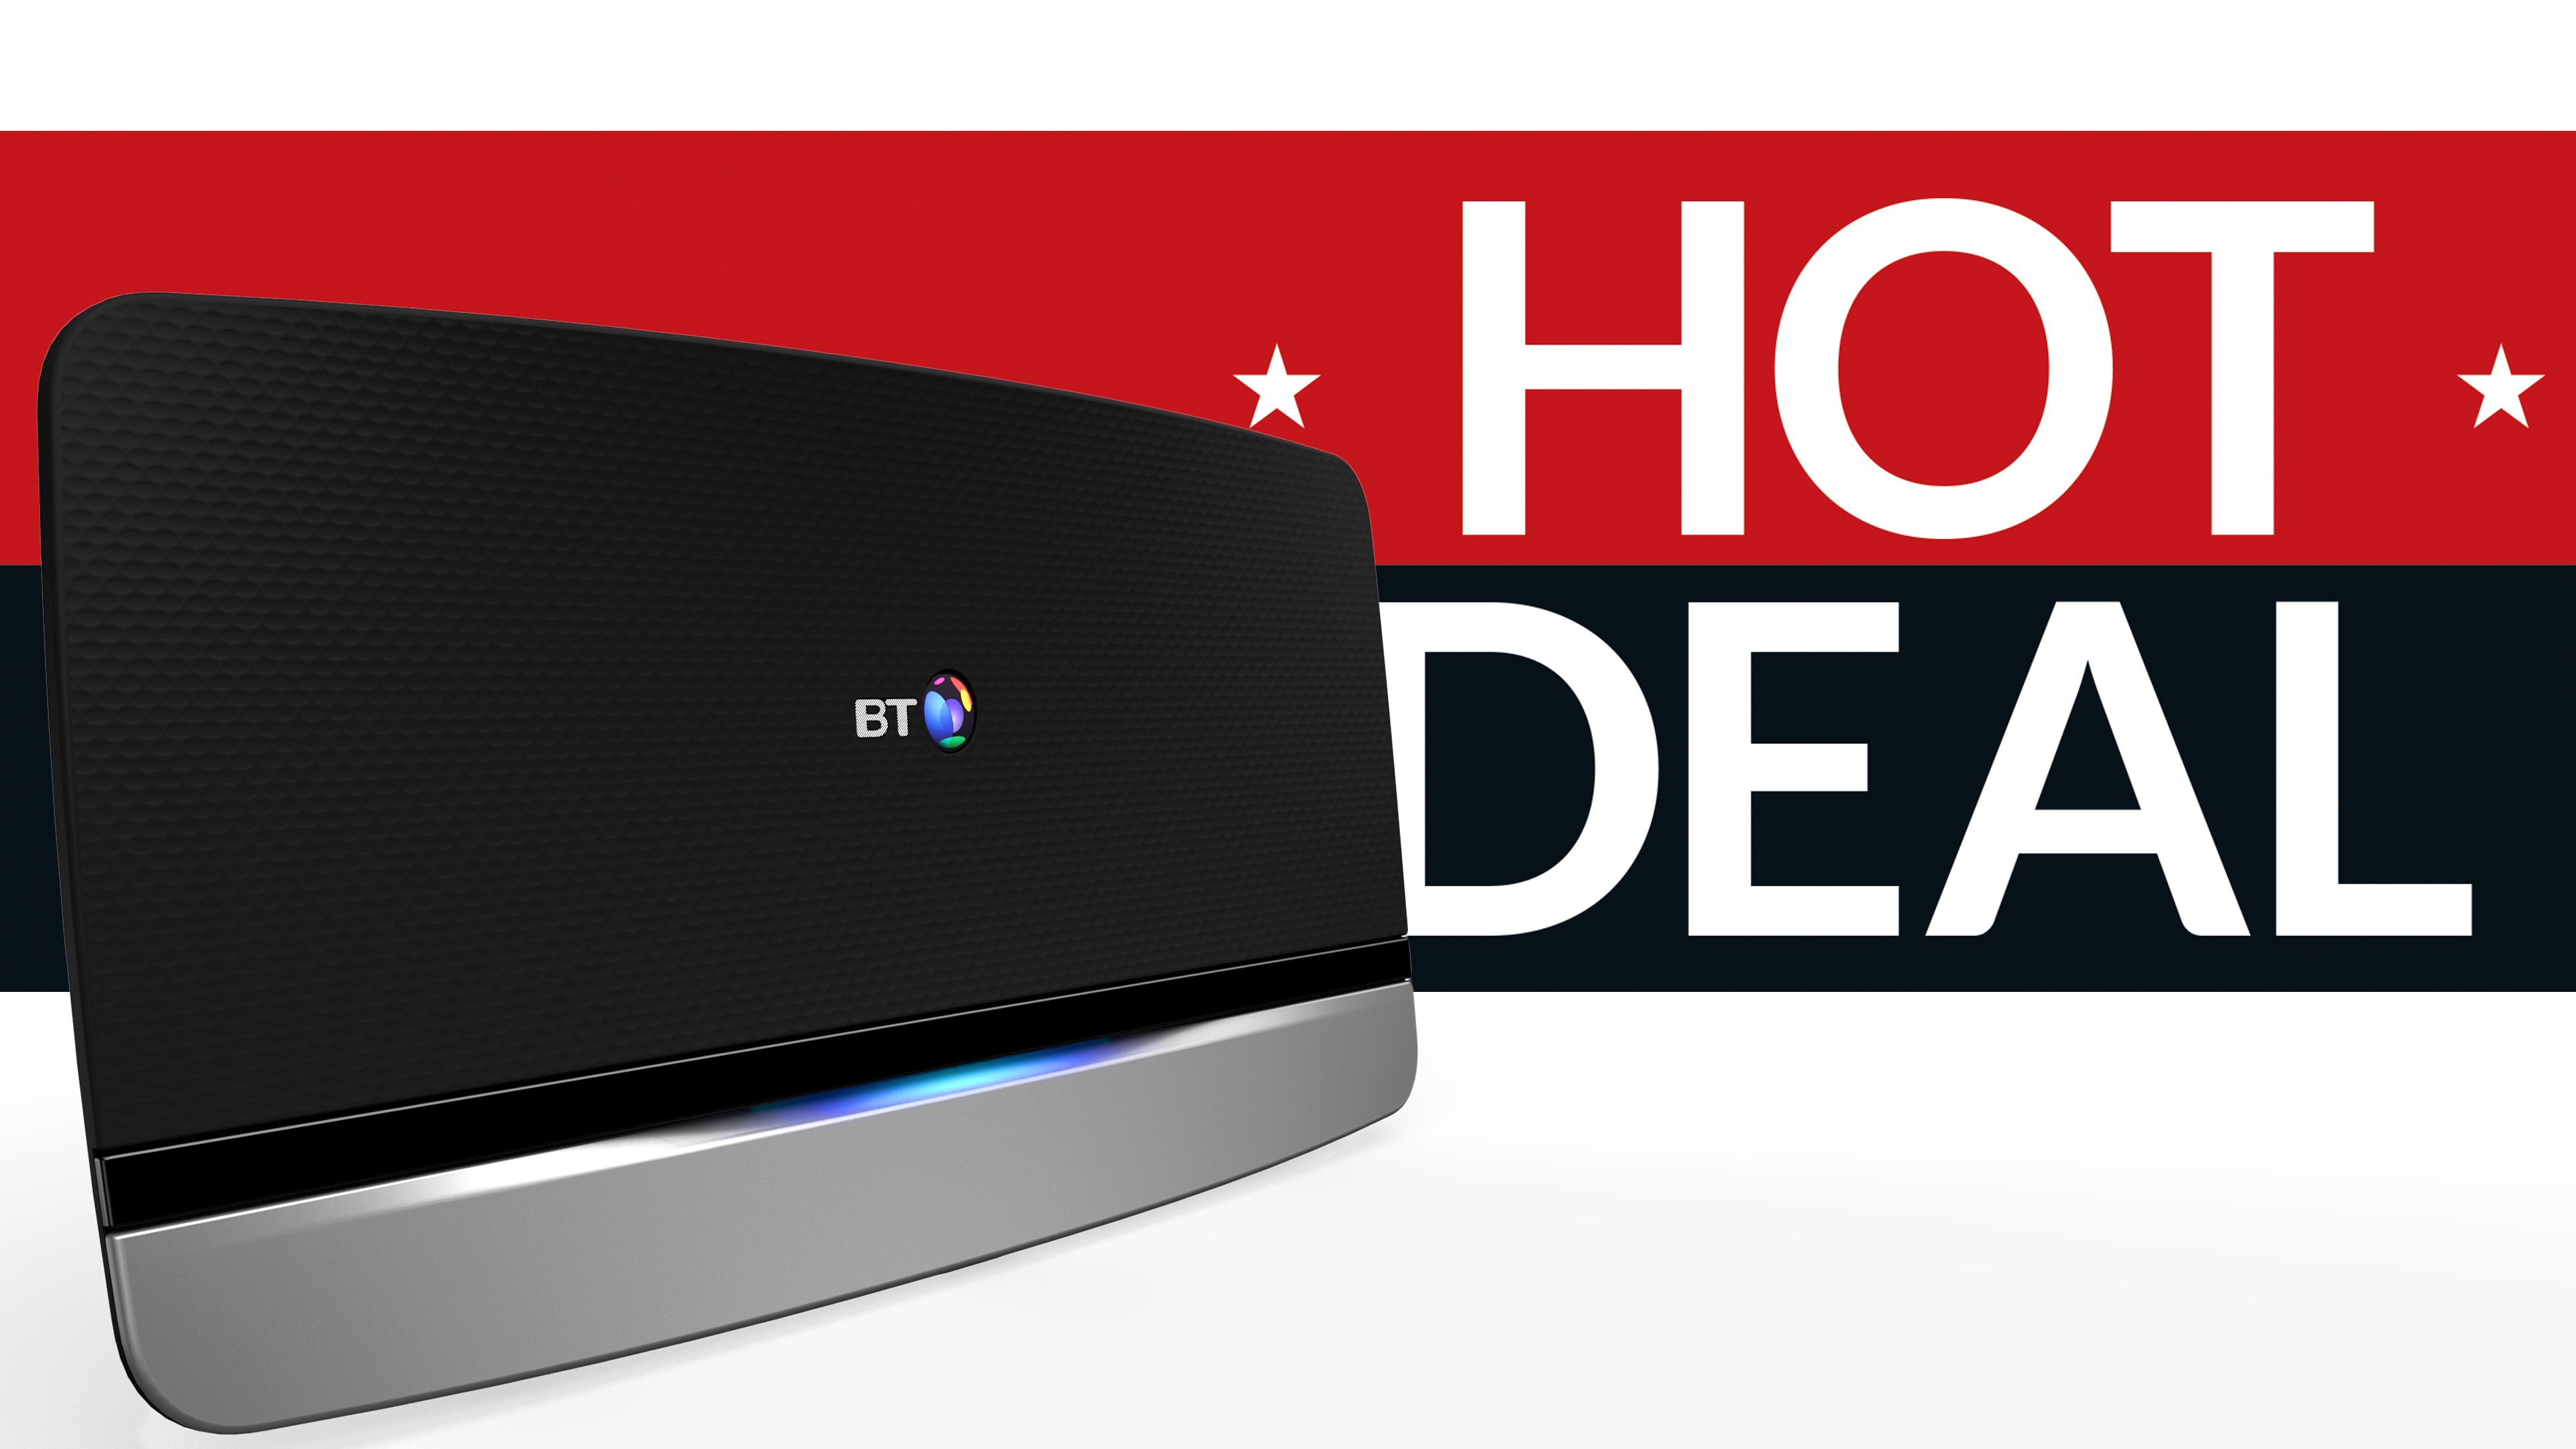 Black Friday Broadband Deal Bt Is Giving Away 140 Pre Paid Credit Cards With Its Latest Internet Offers T3